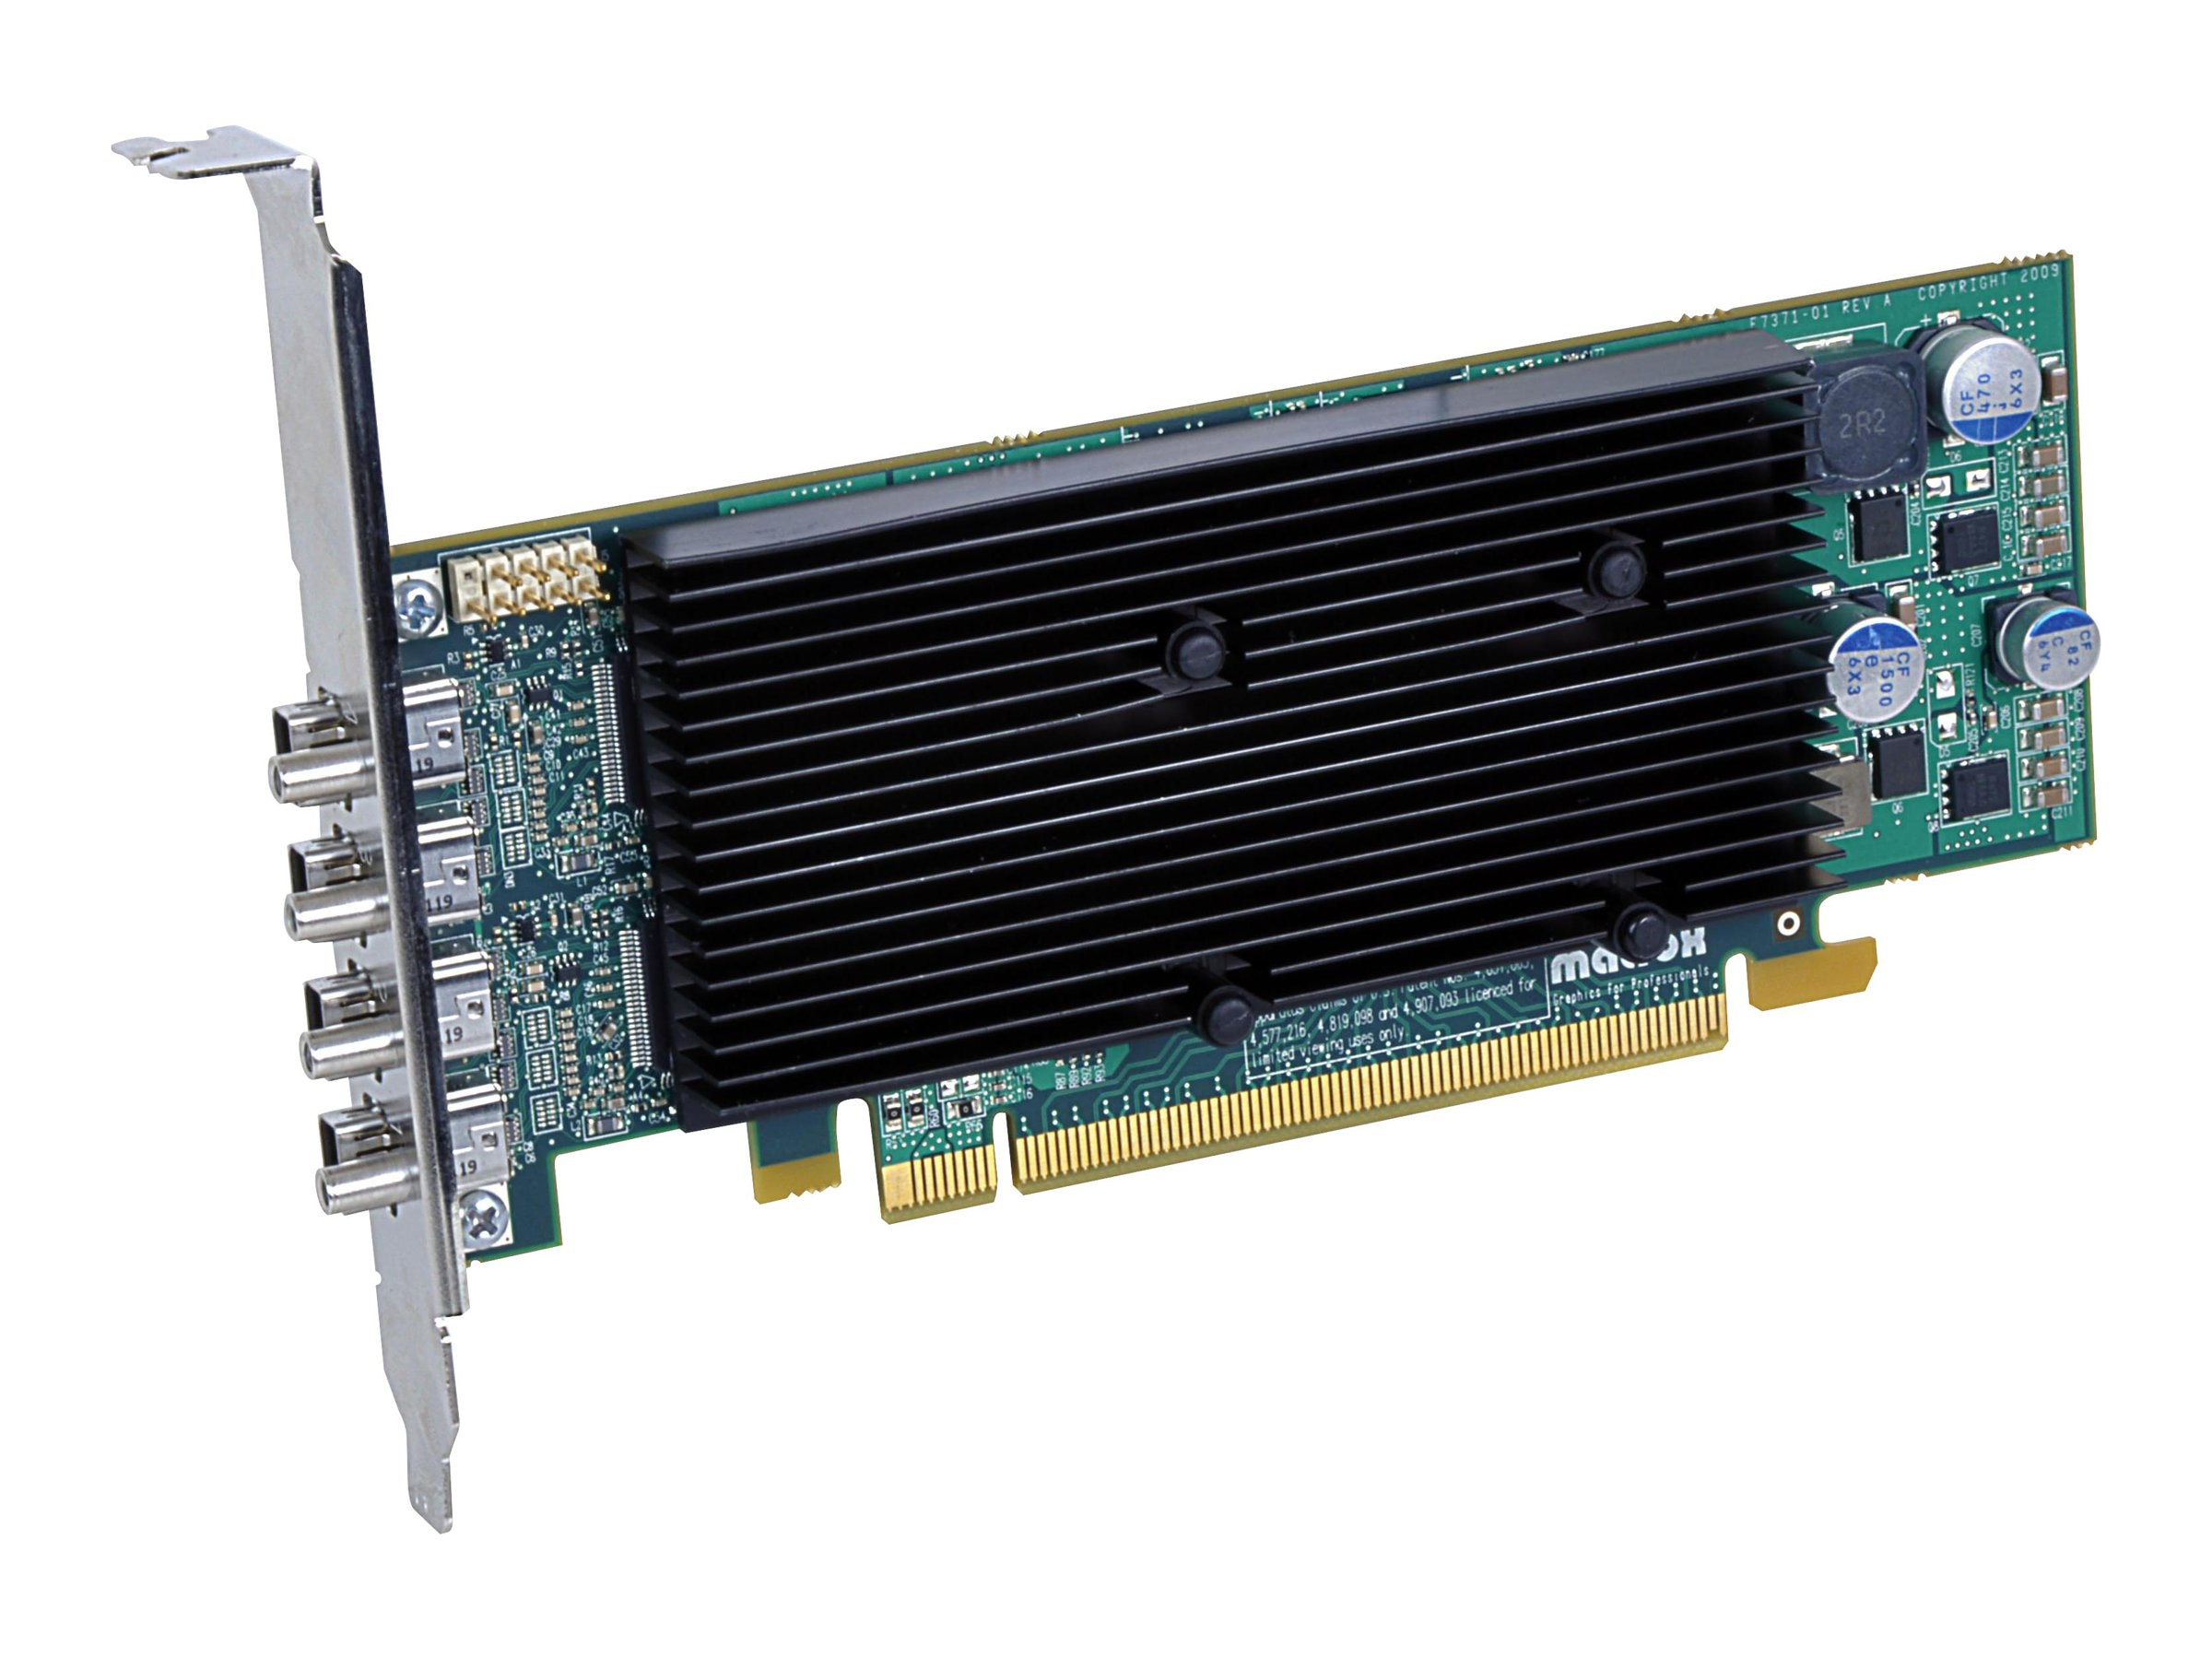 Matrox M9148LP PCIe x16 Graphics Card, 1GB